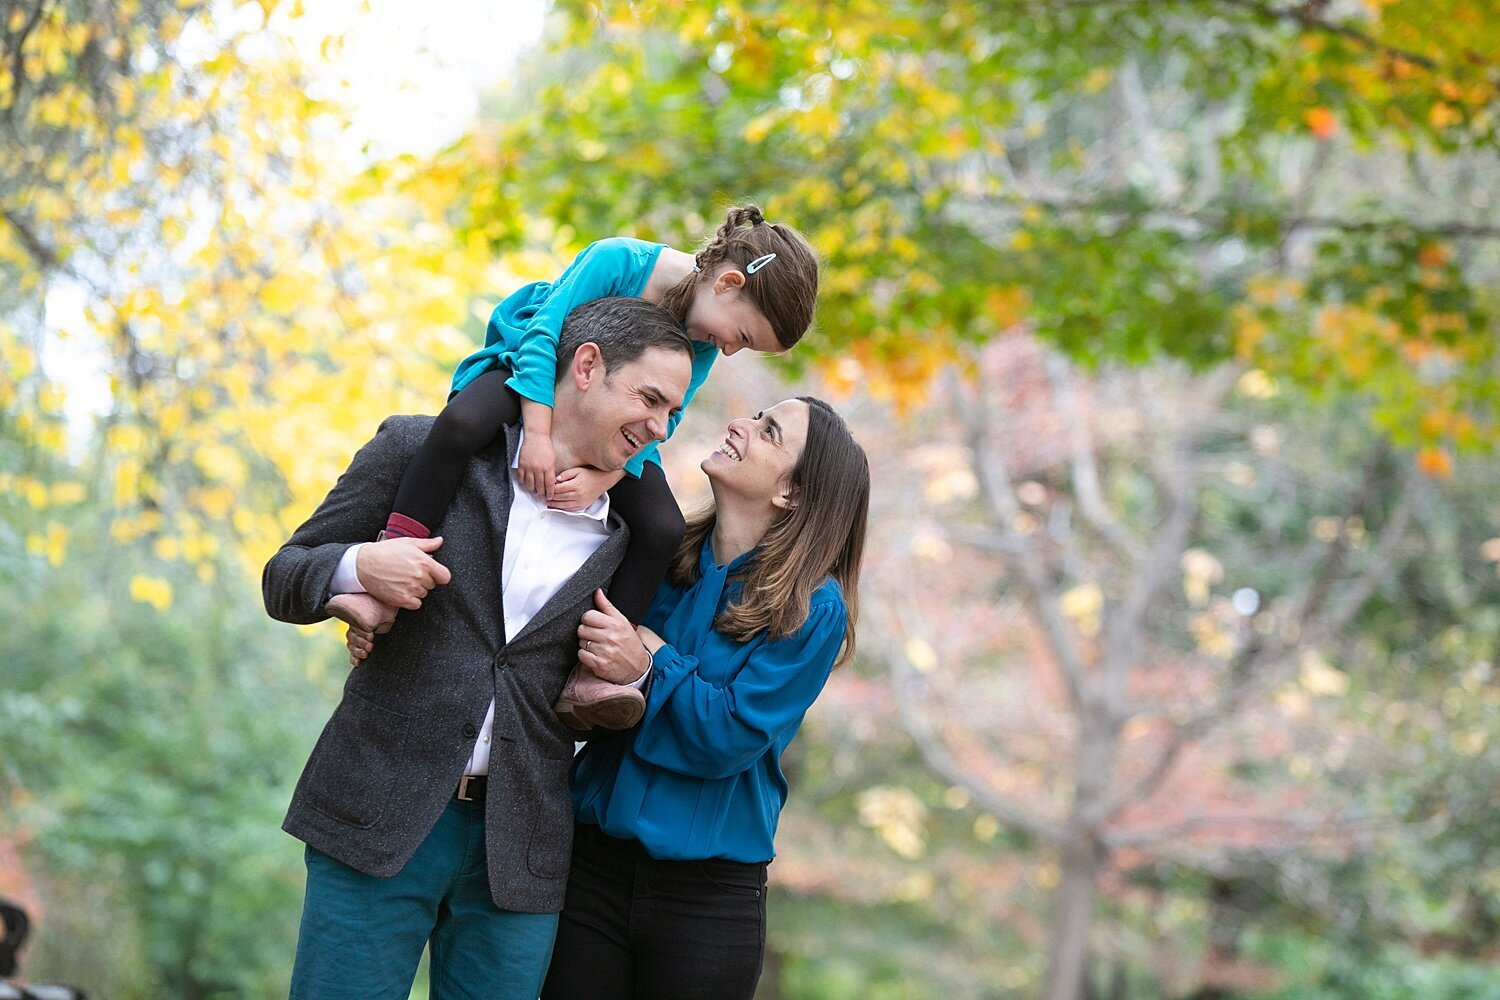 brooklyn_new-york-family_photographer_20_015_WEB